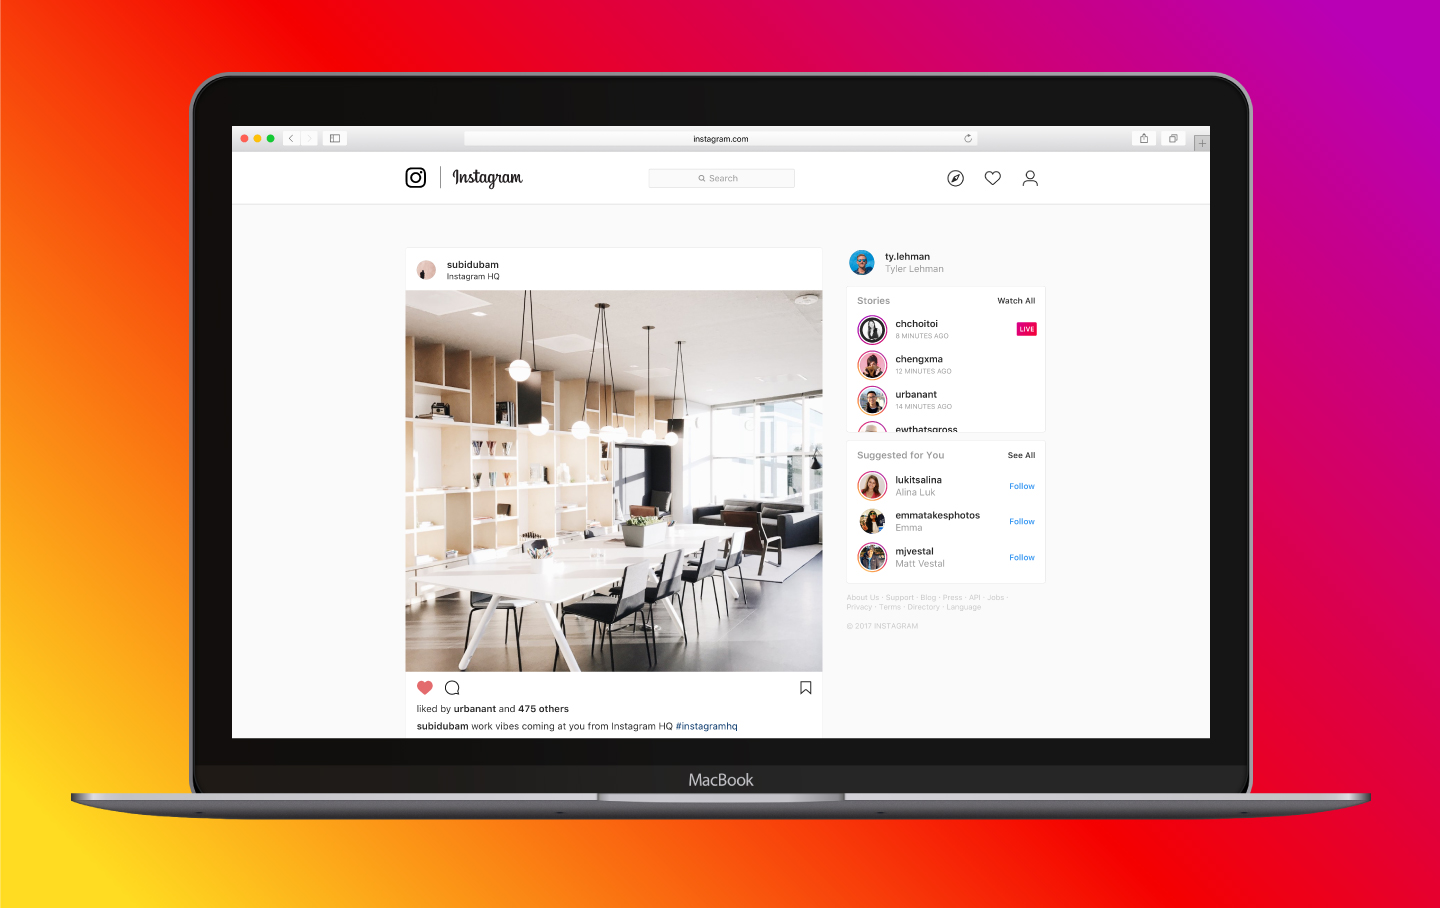 Instagram Live in desktop feed